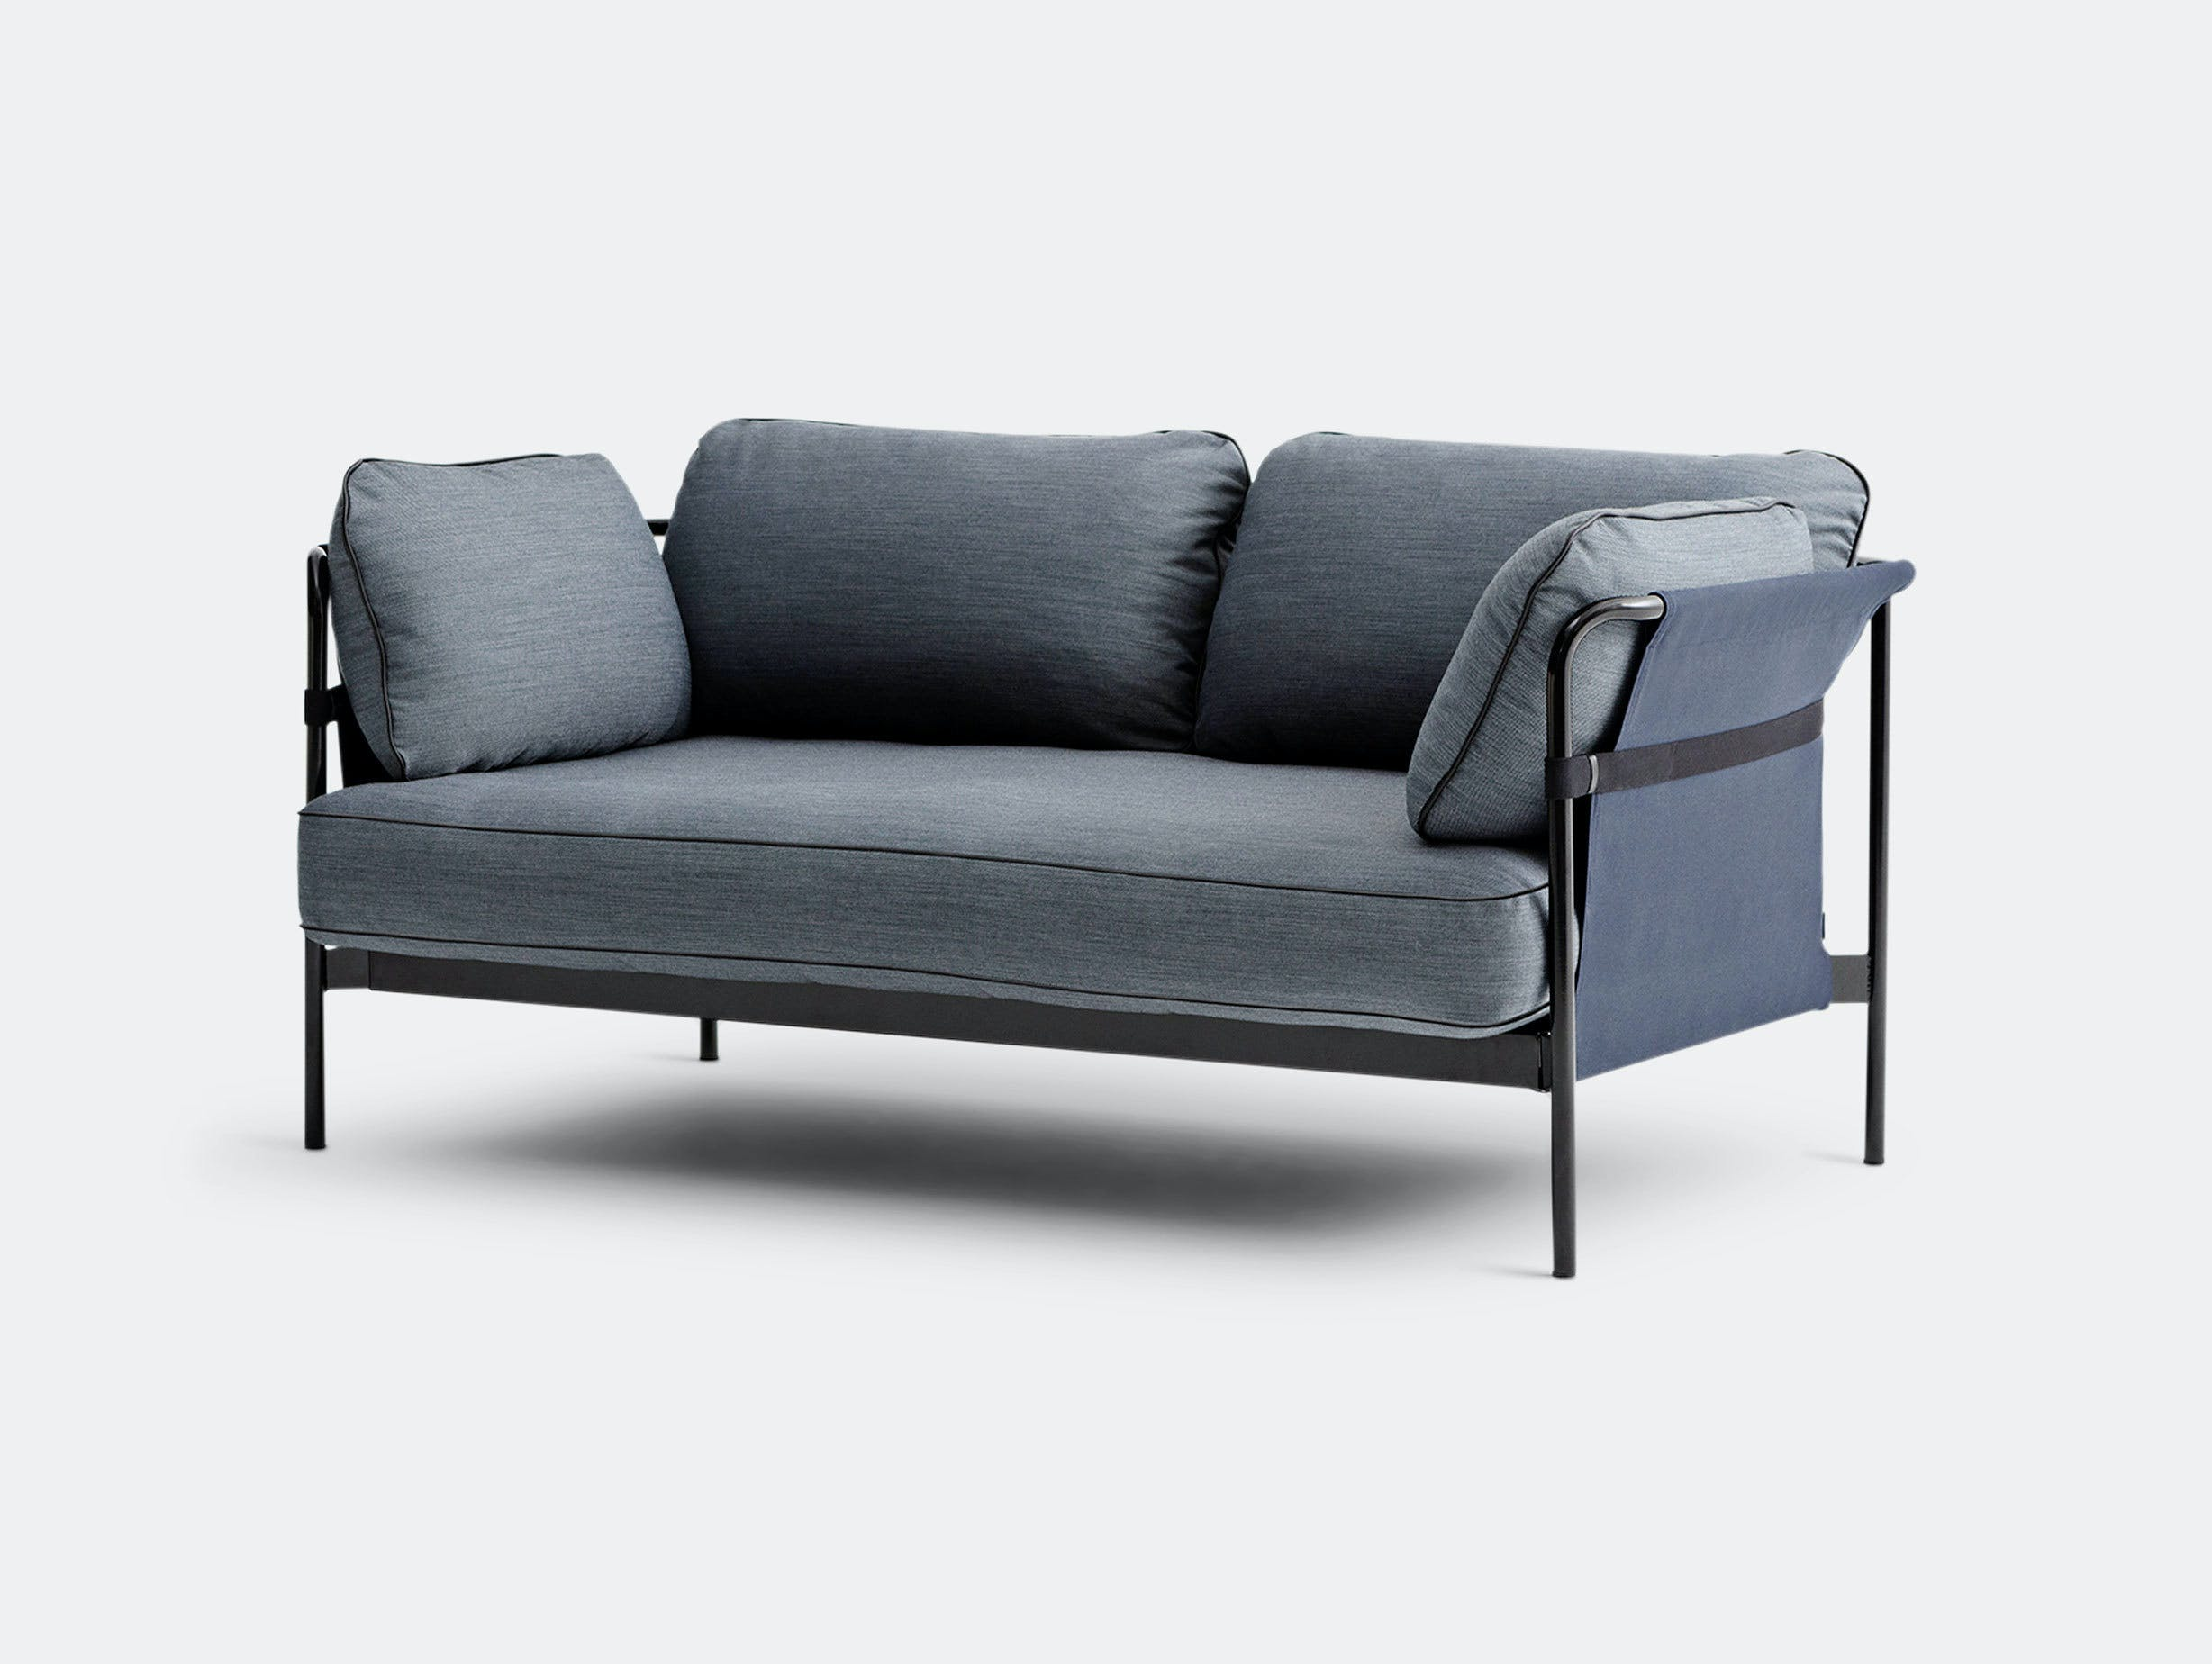 hay sofa kvadrat art deco sectional mags soft viaduct can